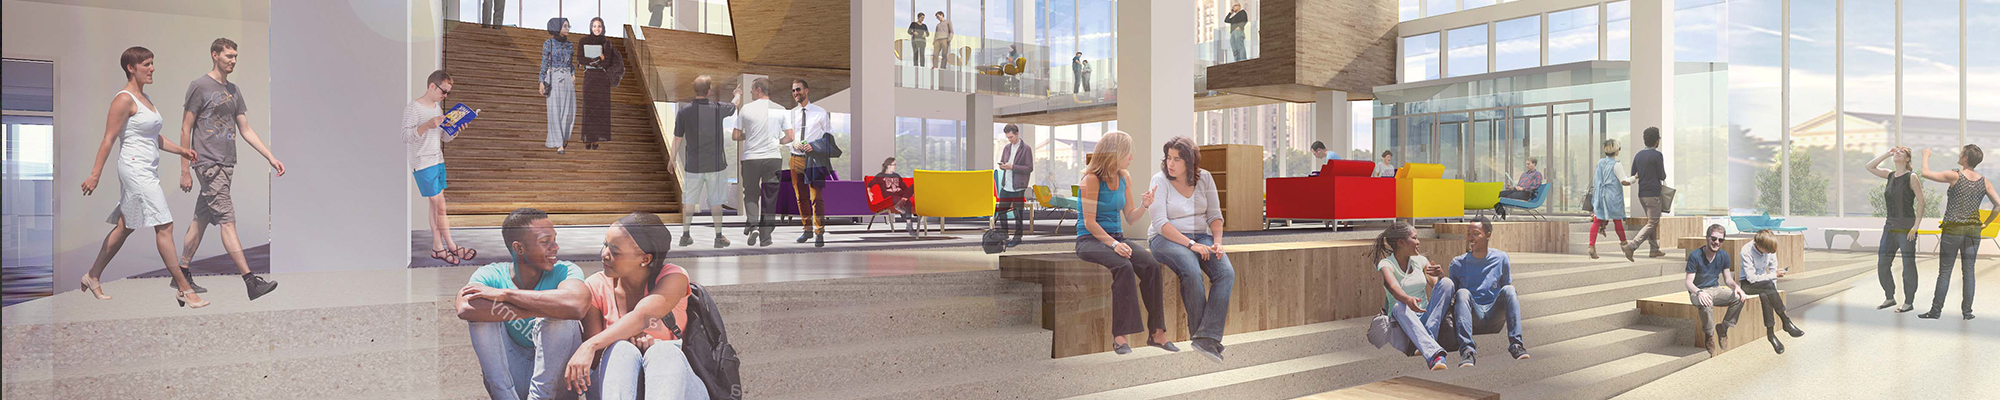 Proposed Hillman Library Ground Floor View